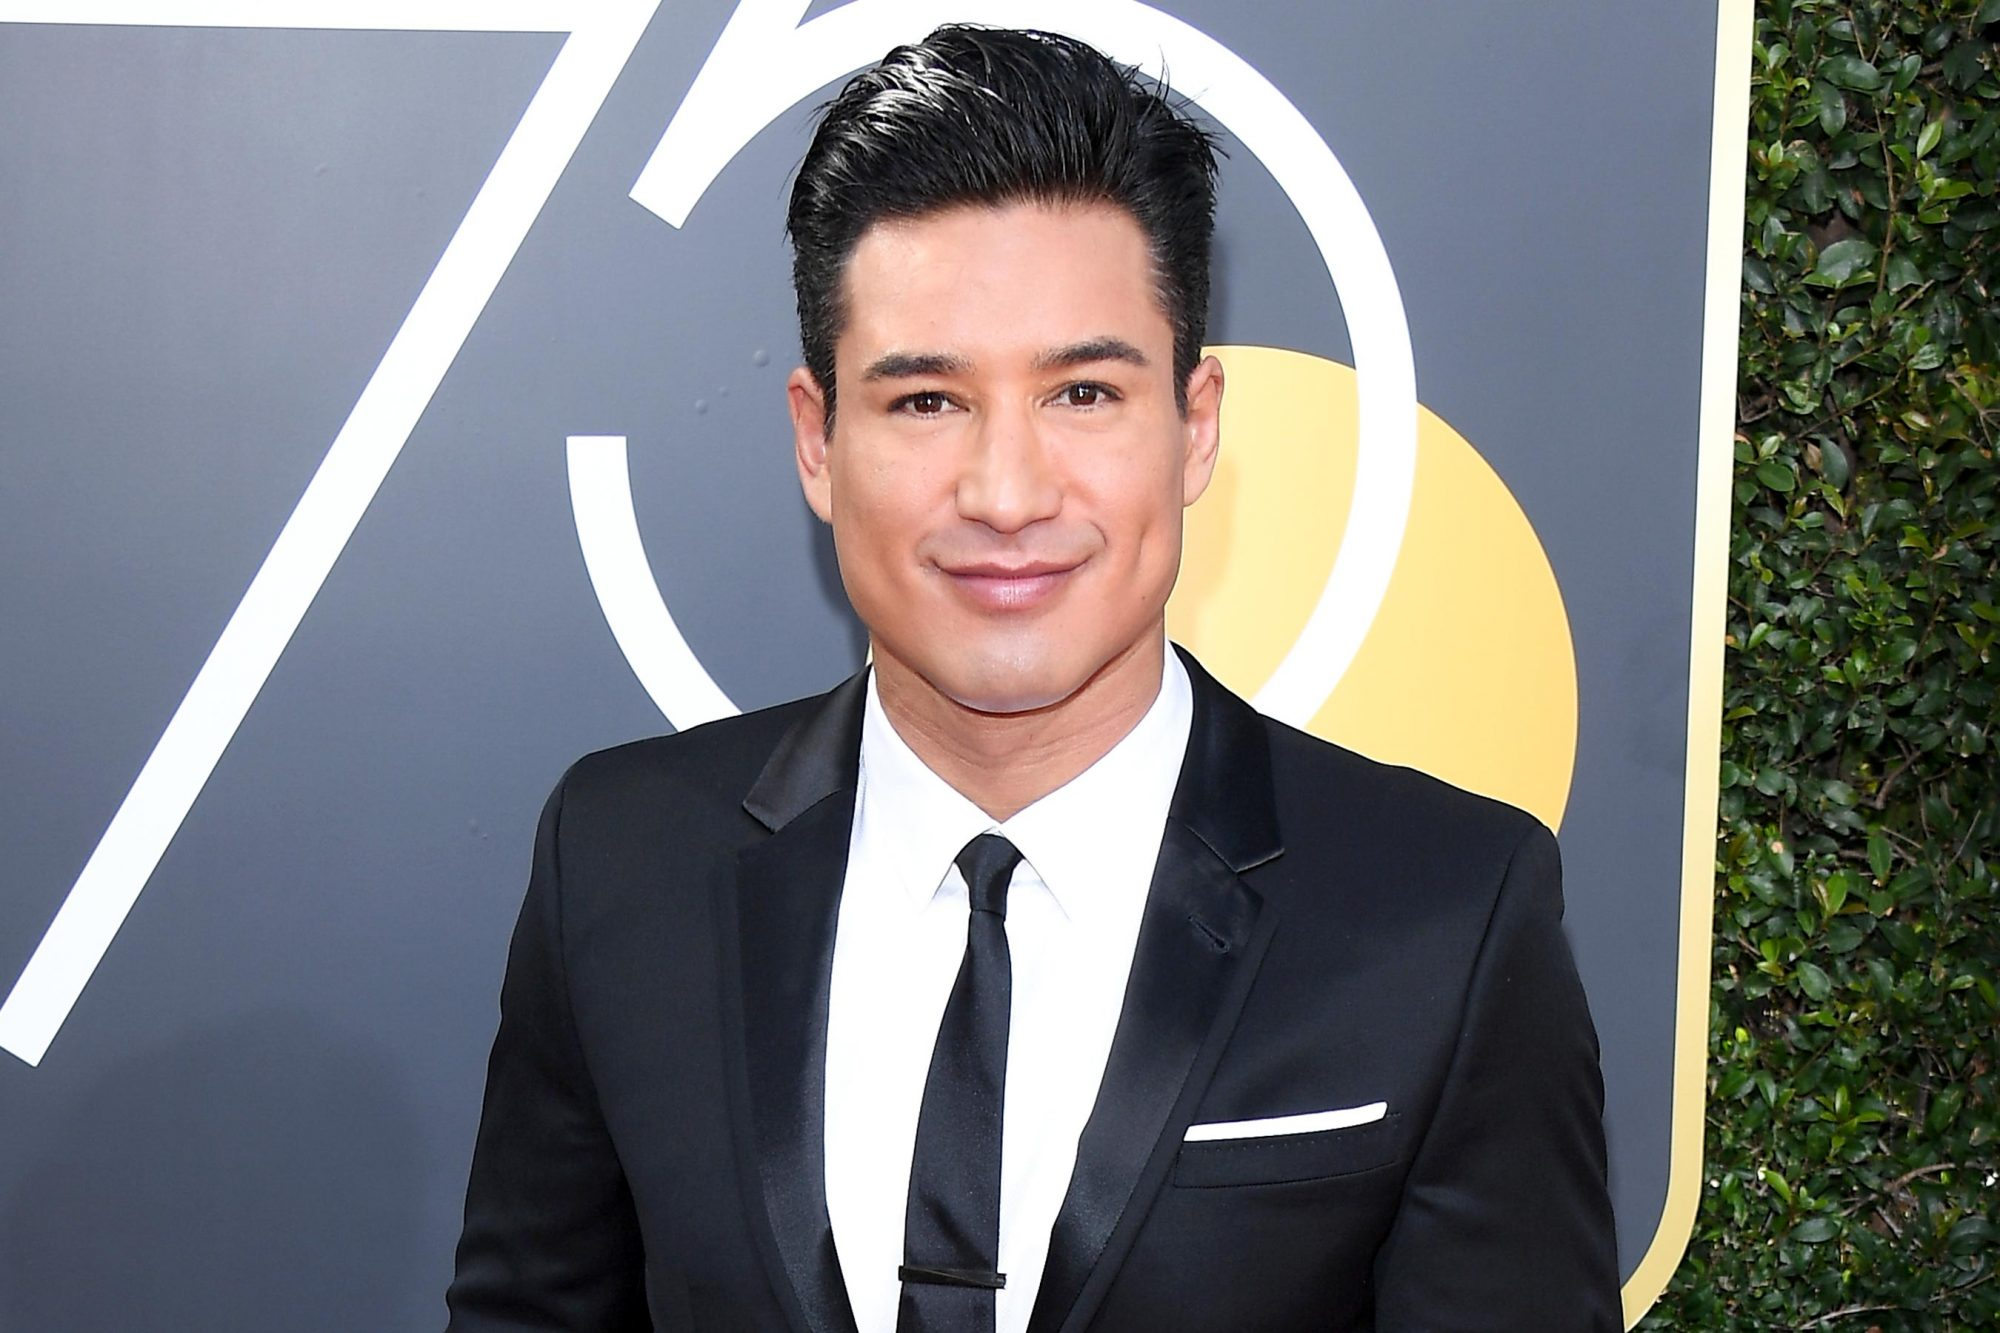 BEVERLY HILLS, CA - JANUARY 07: TV Personality Mario Lopez attends The 75th Annual Golden Globe Awards at The Beverly Hilton Hotel on January 7, 2018 in Beverly Hills, California. (Photo by Venturelli/WireImage)